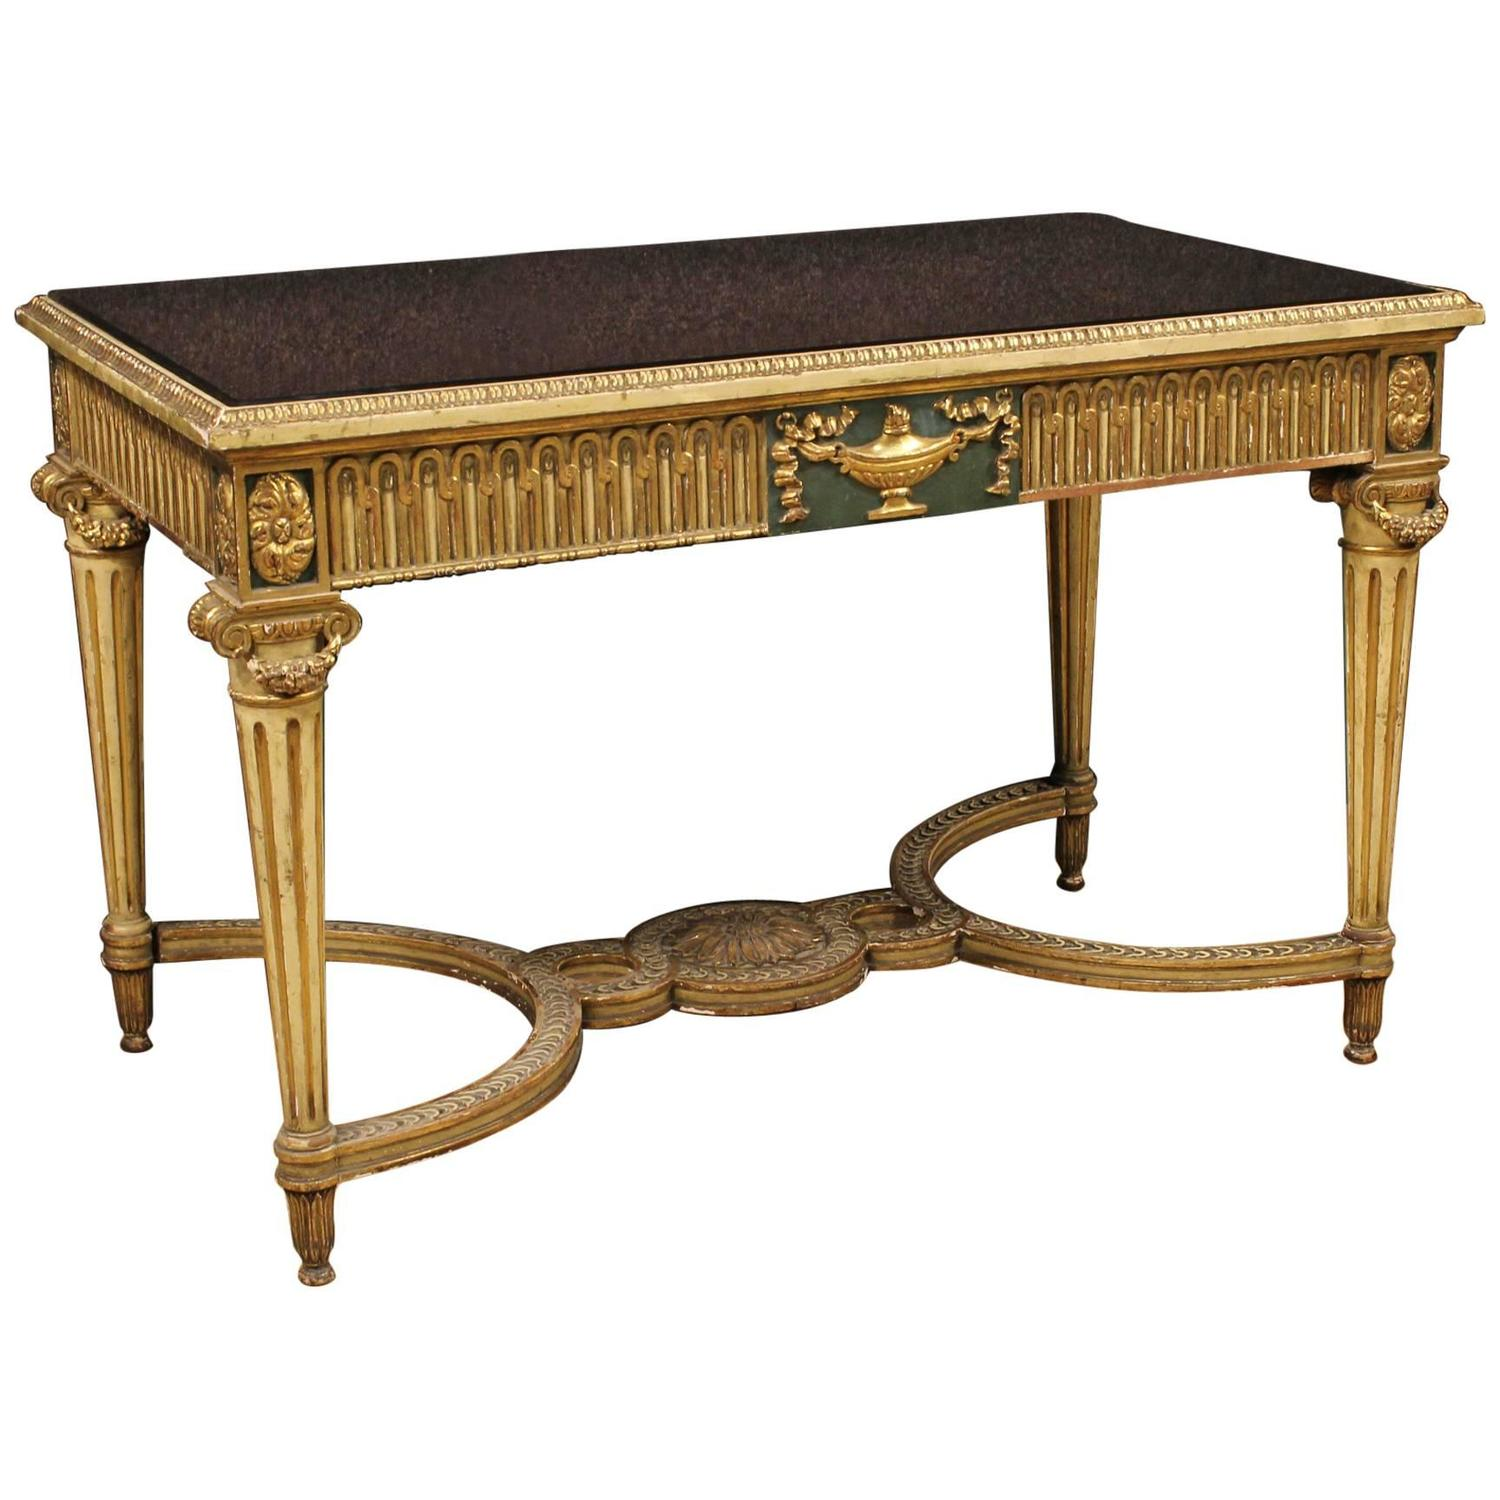 20th century italian coffee table in louis xvi style at 1stdibs. Black Bedroom Furniture Sets. Home Design Ideas